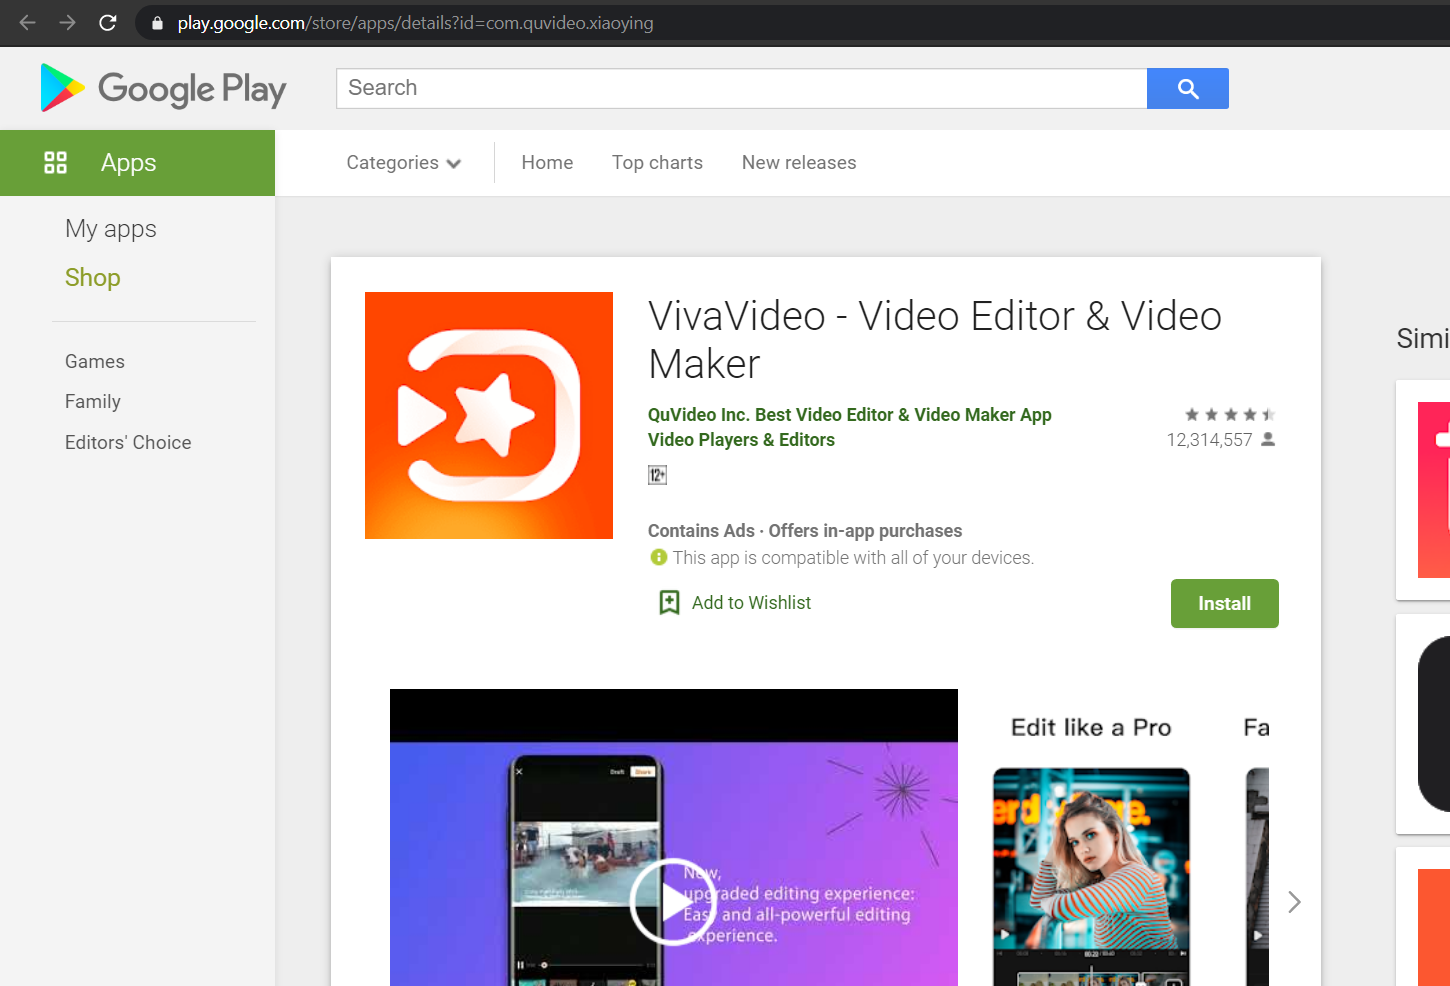 Android Video Editing App With Over 100 Million Downloads Is Stealing Money From Users Digital Information World